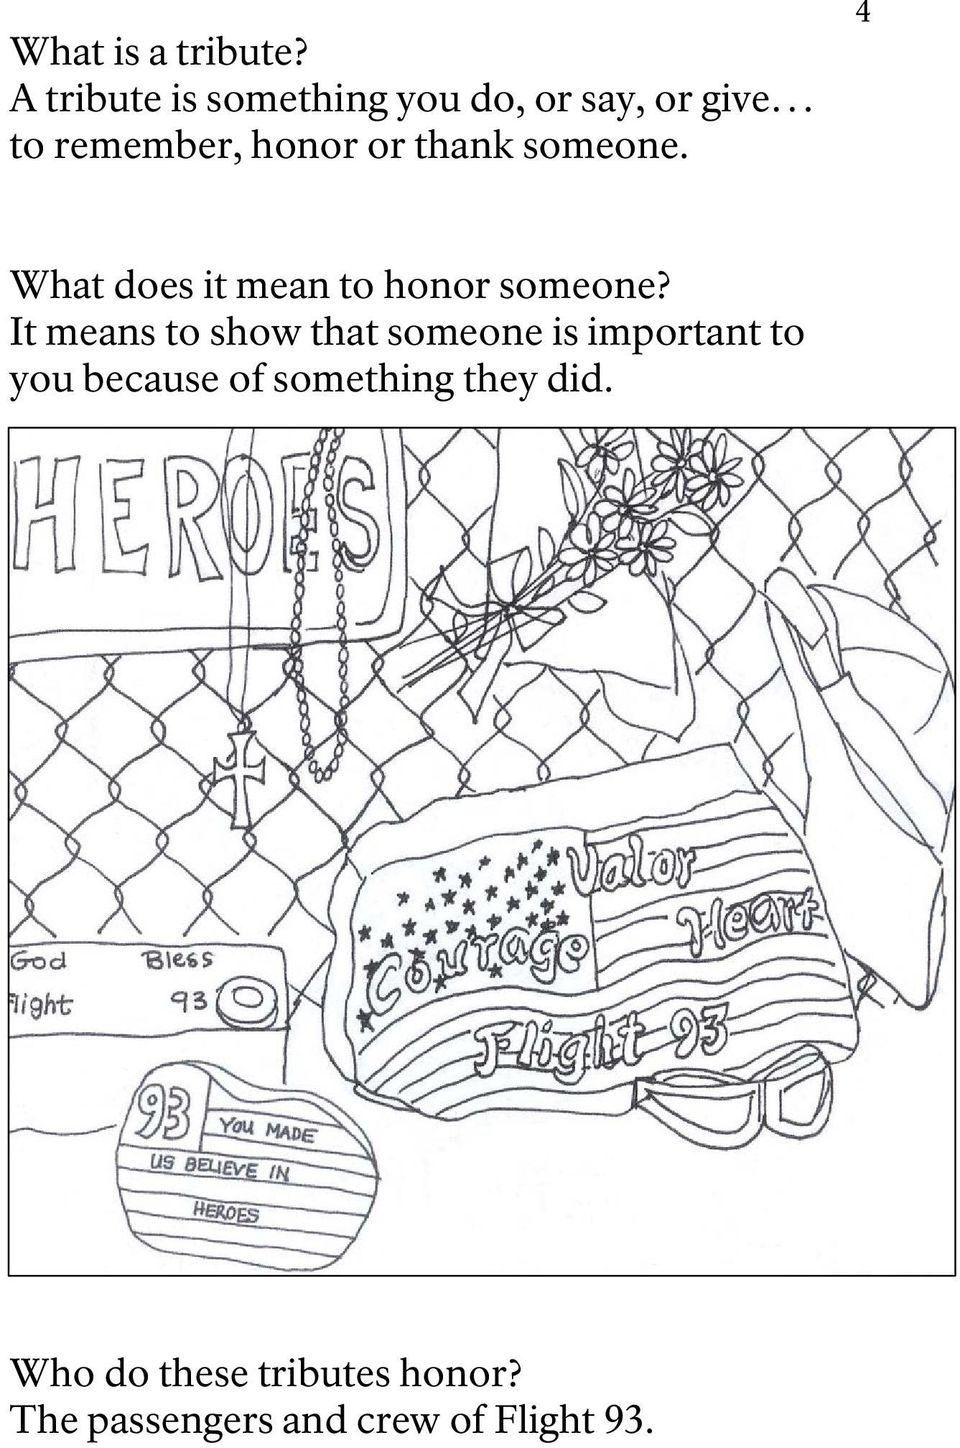 thank someone. 4 What does it mean to honor someone?